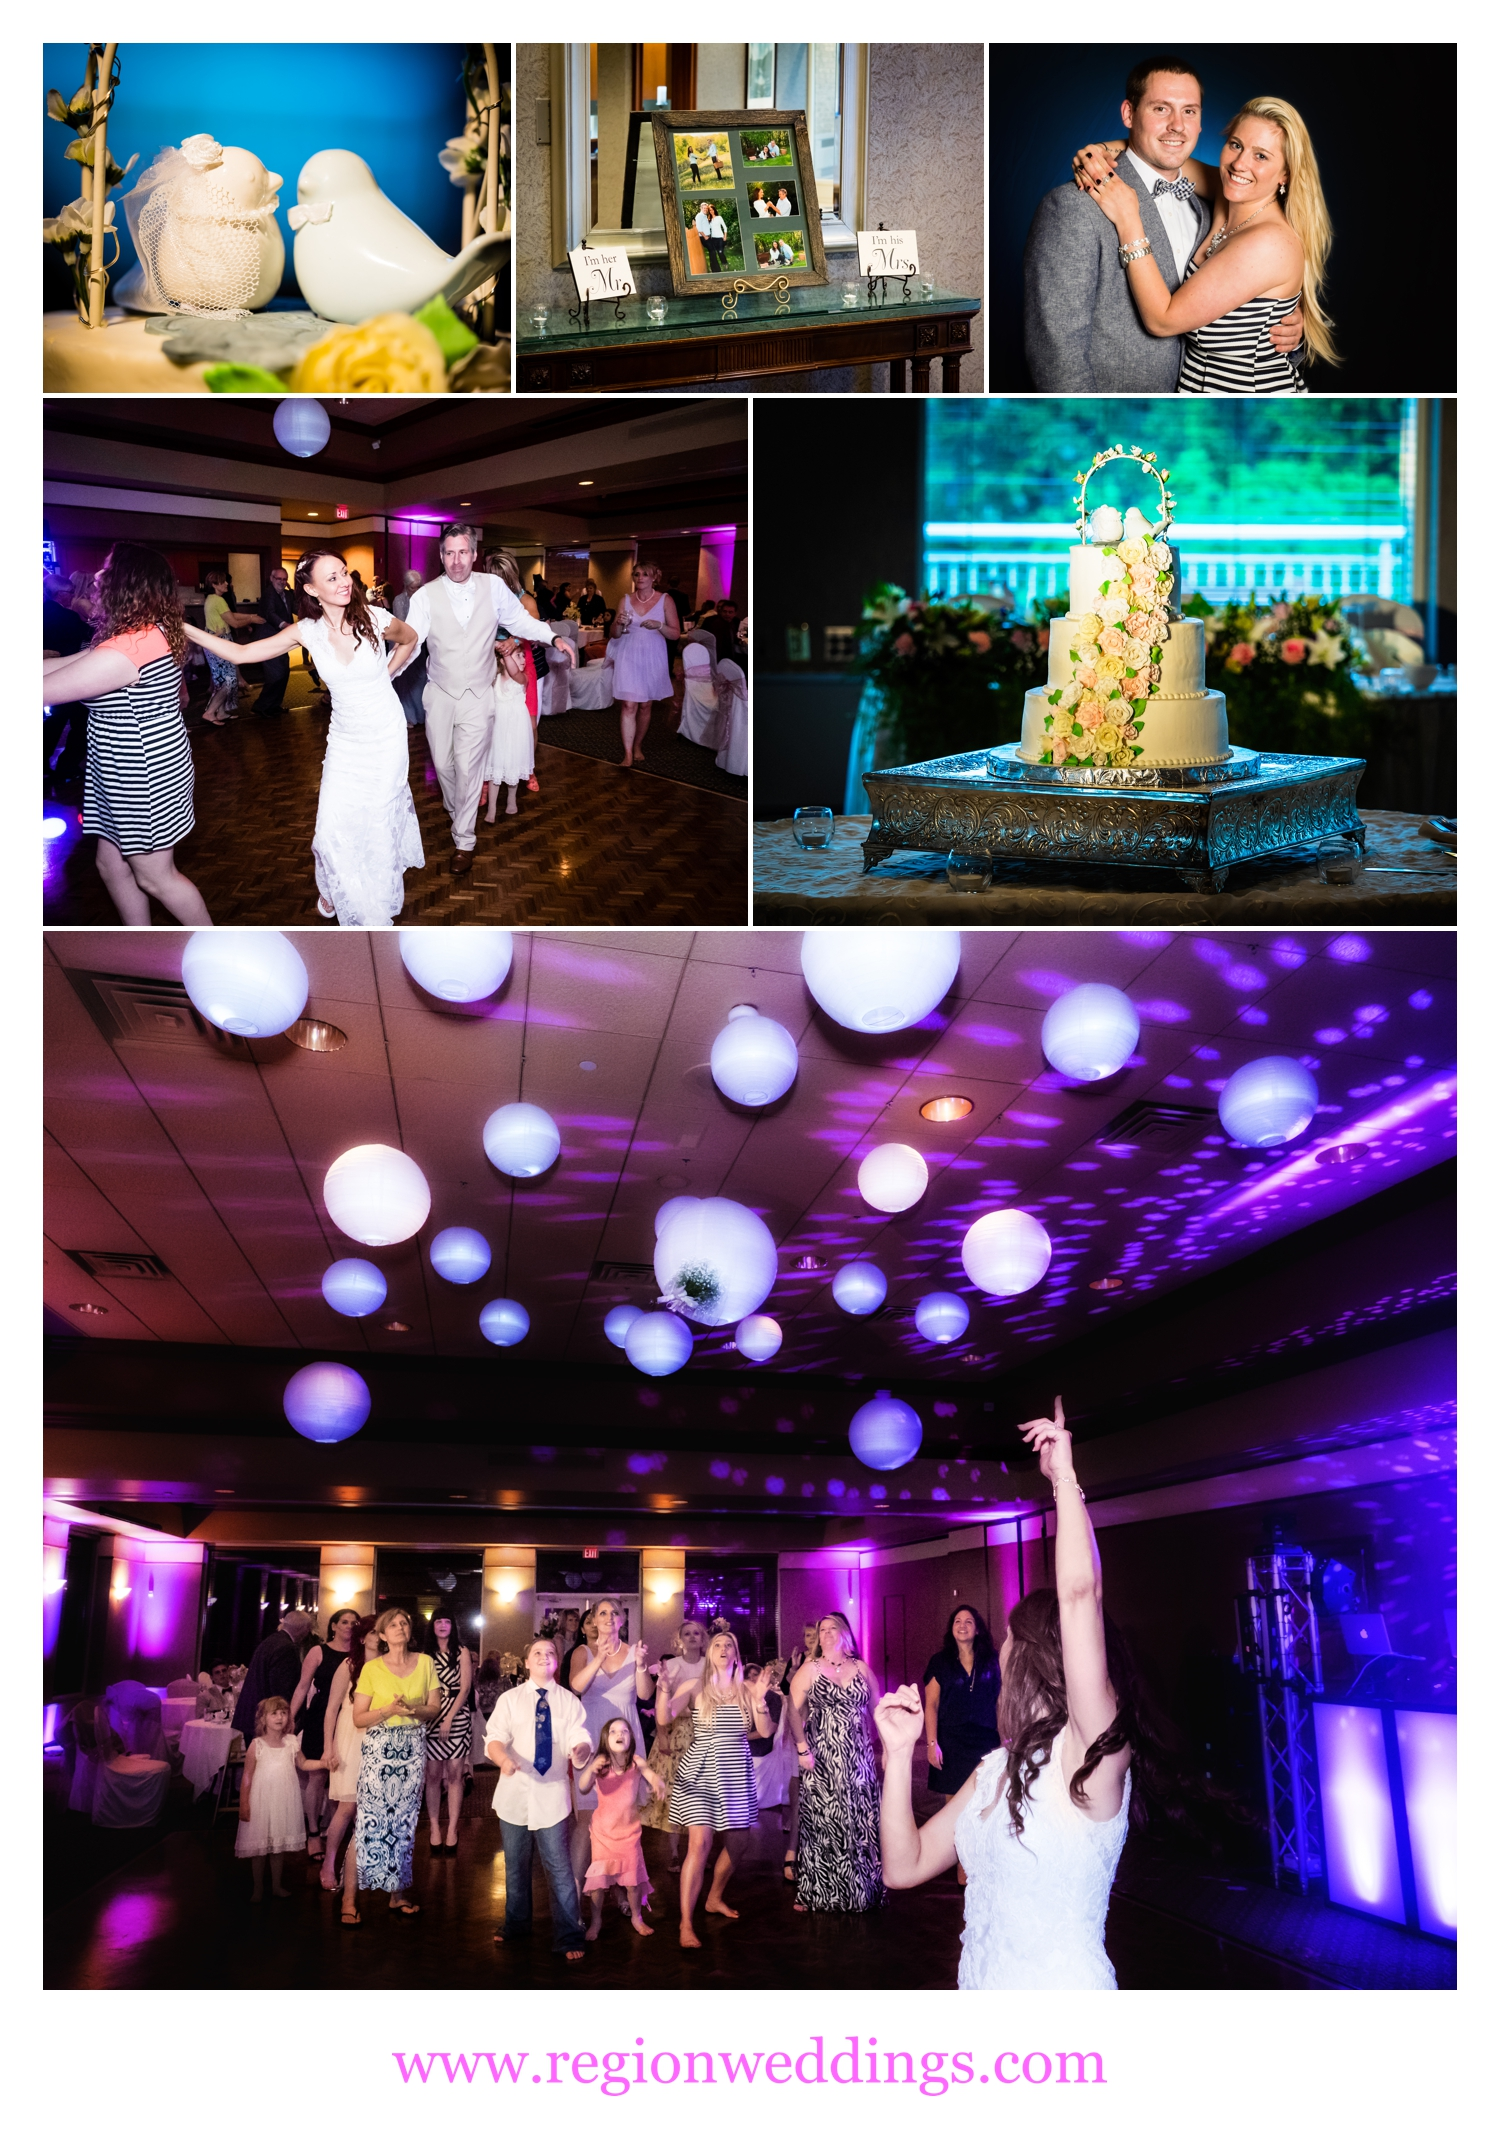 Wedding reception photo collage from Sand Creek Country Club.